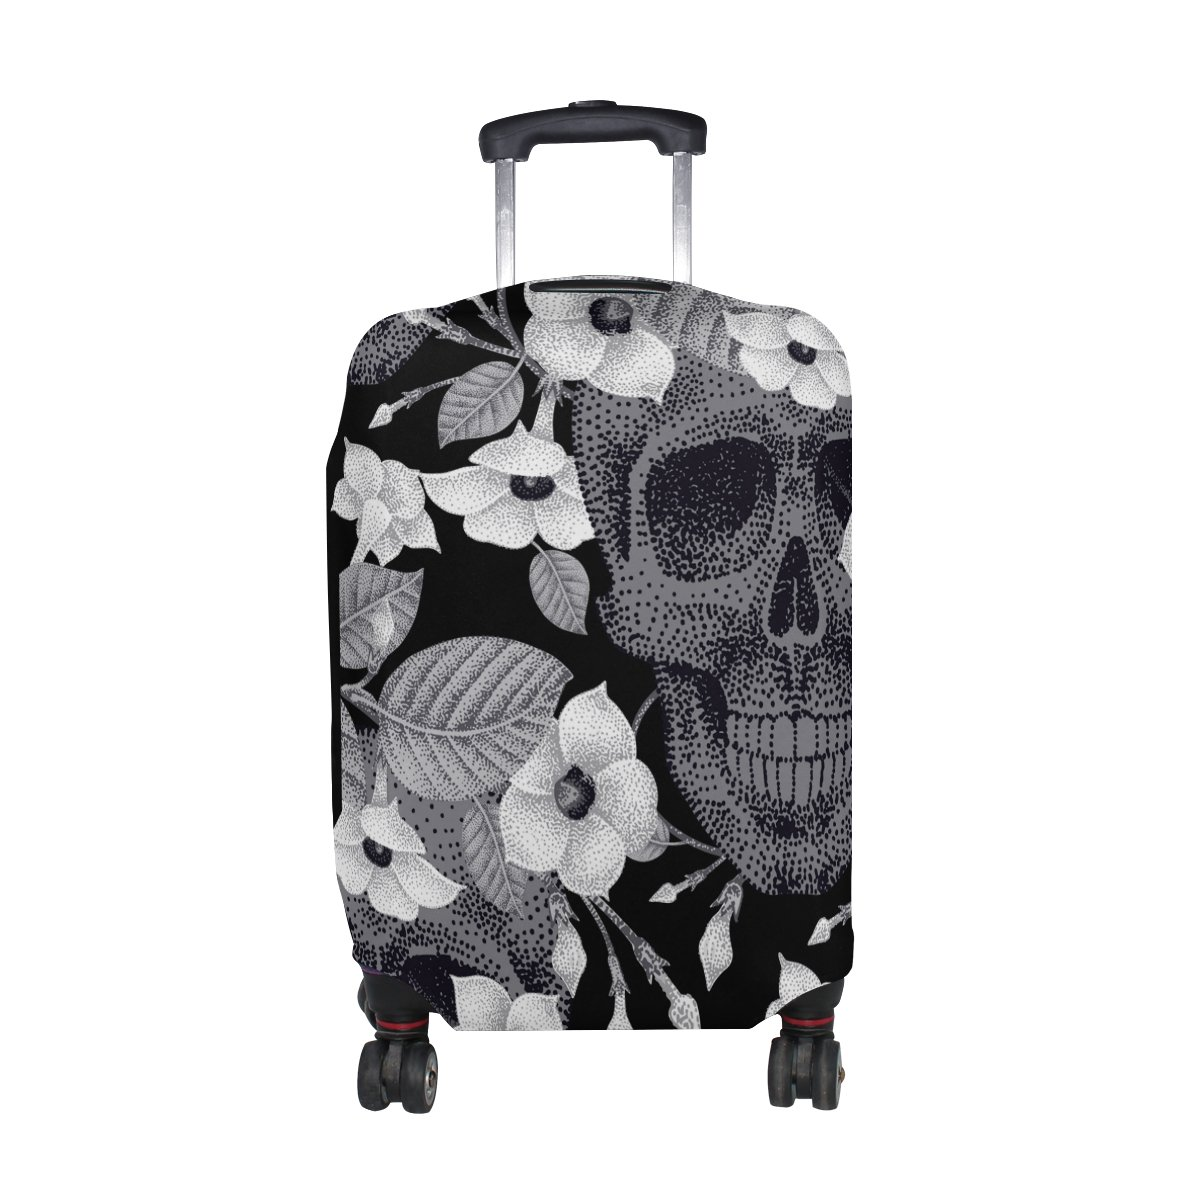 GIOVANIOR Rose Luggage Cover Suitcase Protector Carry On Covers